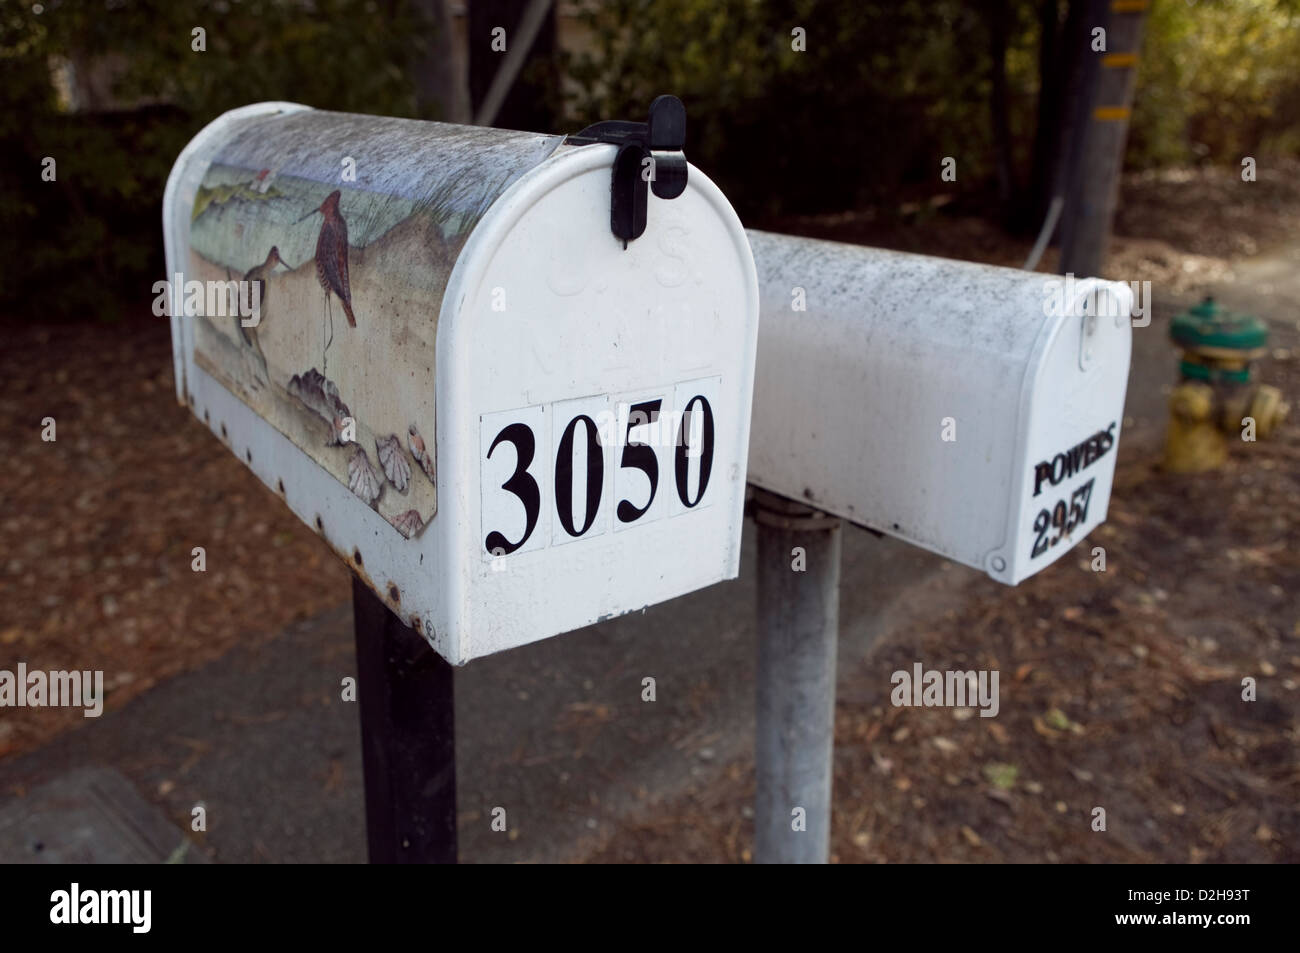 A PAINTED US MAIL BOX IN CARMEL, CALIFORNIA , USA, 2010. - Stock Image